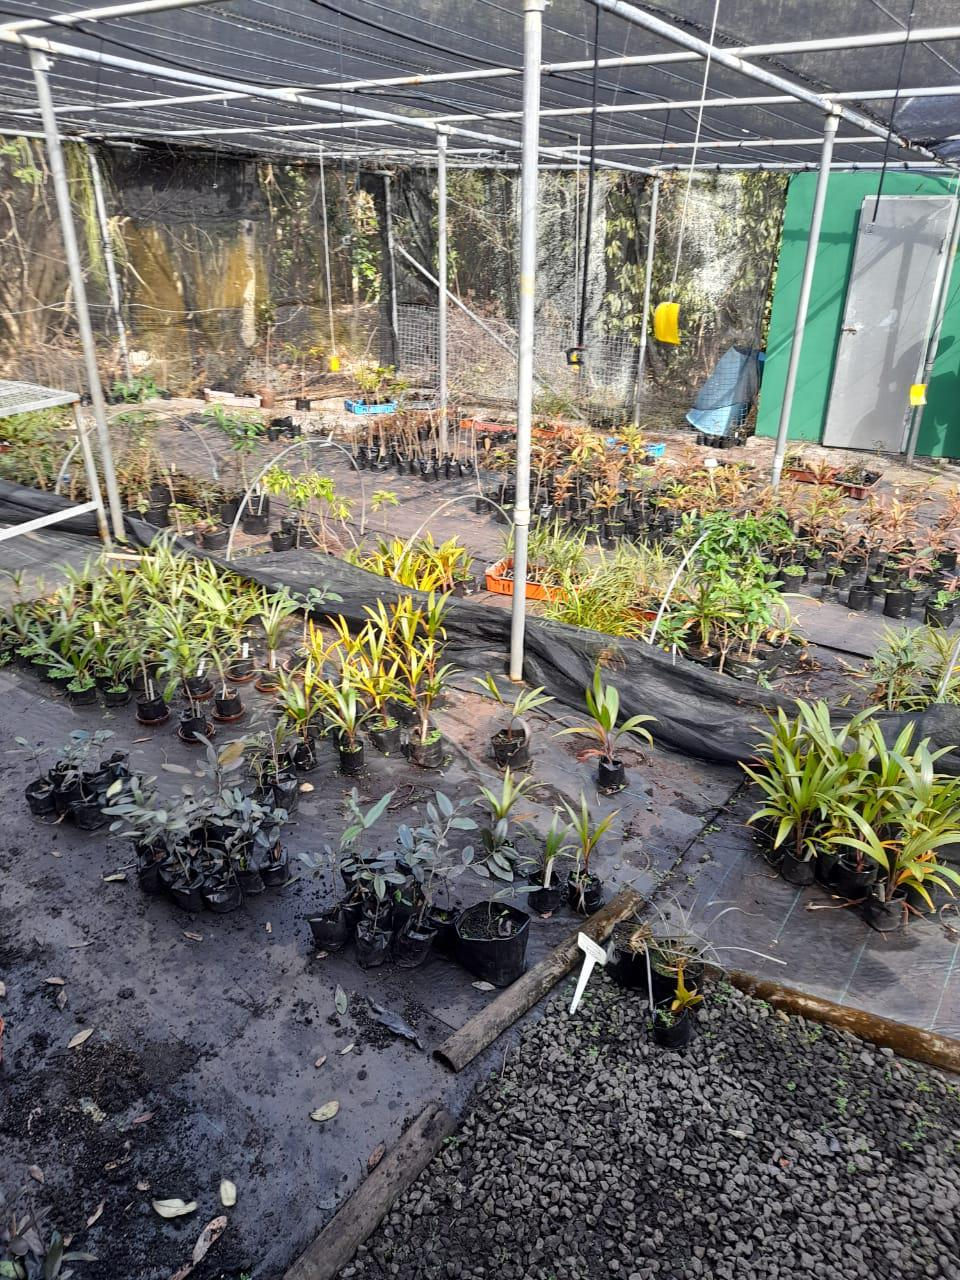 7 Aug 2020: The nursery on Ile aux Aigrettes had to be rapidly prepared and sorted to remove the most vulnerable plants that could be most easily transported